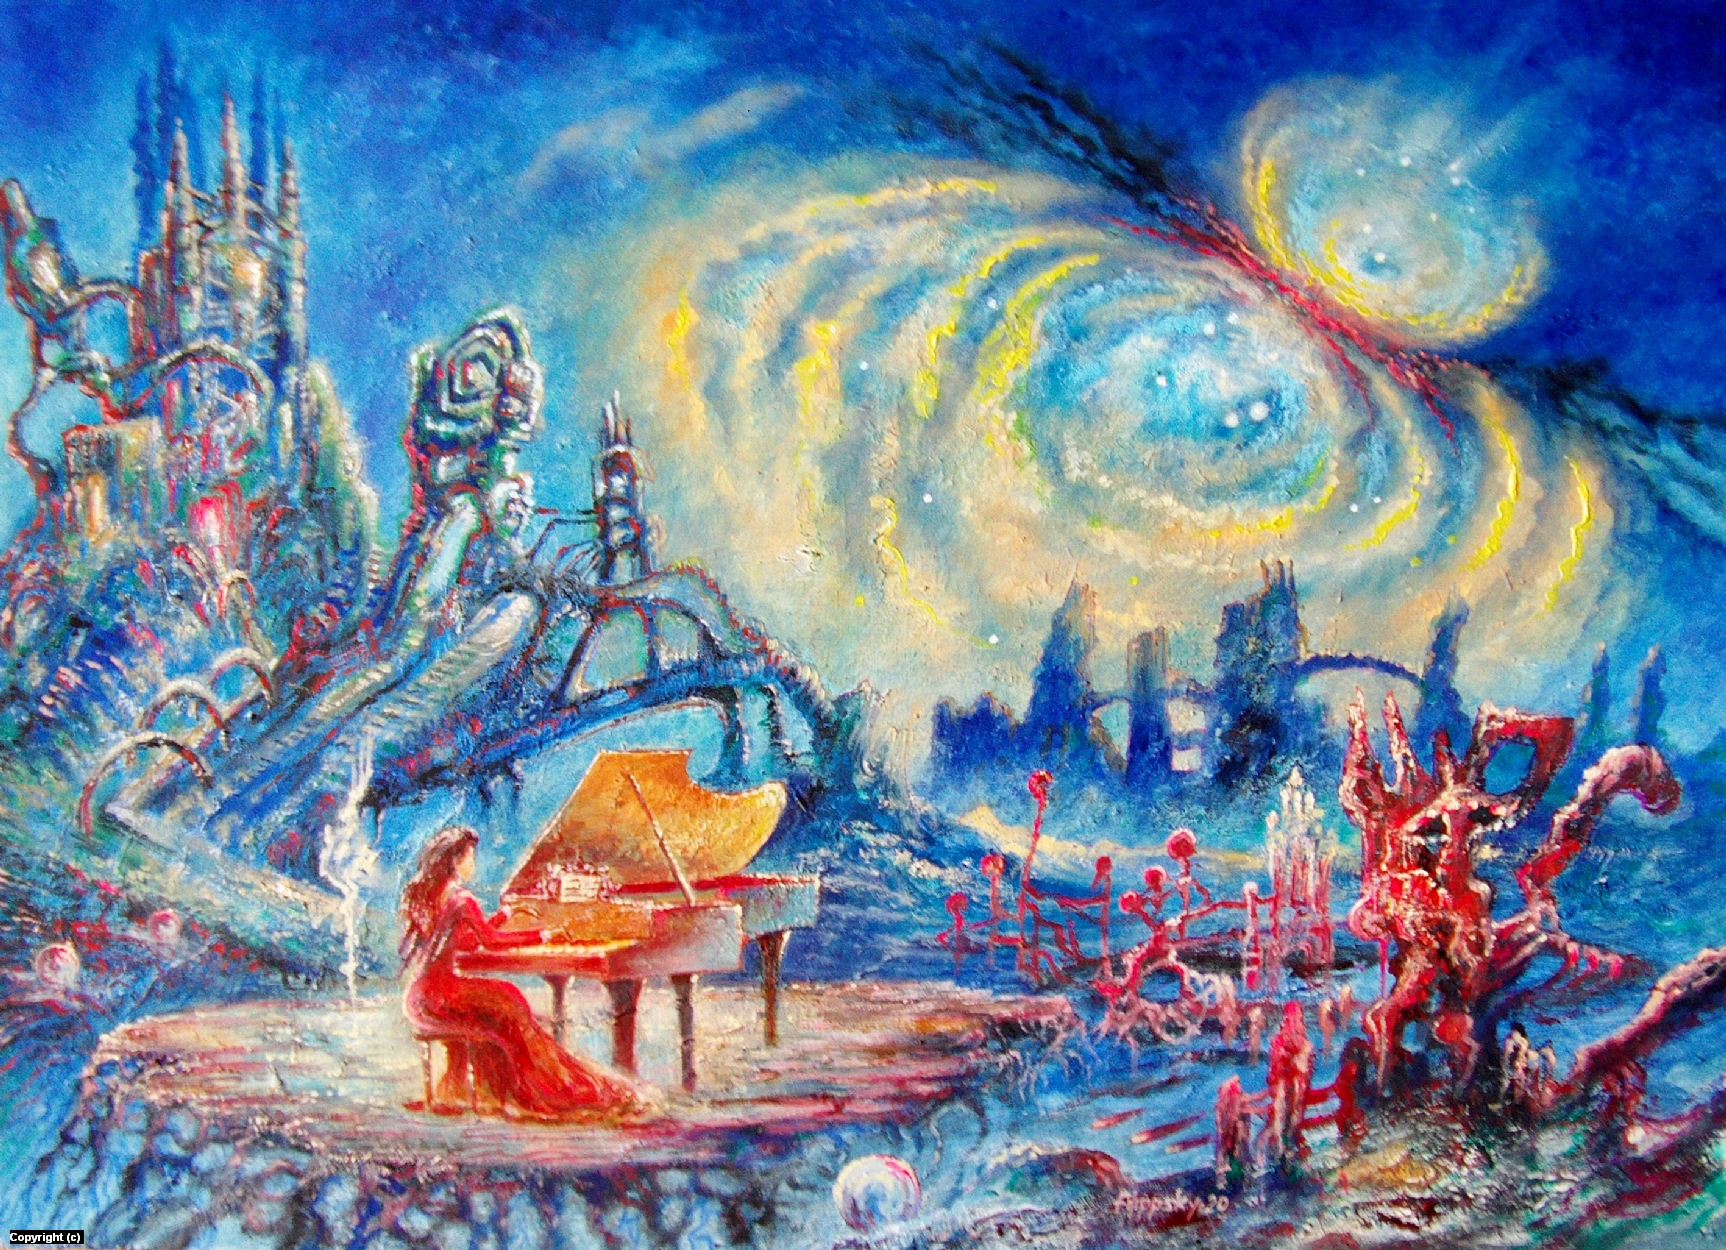 Space music. Artwork by Victor Filippsky